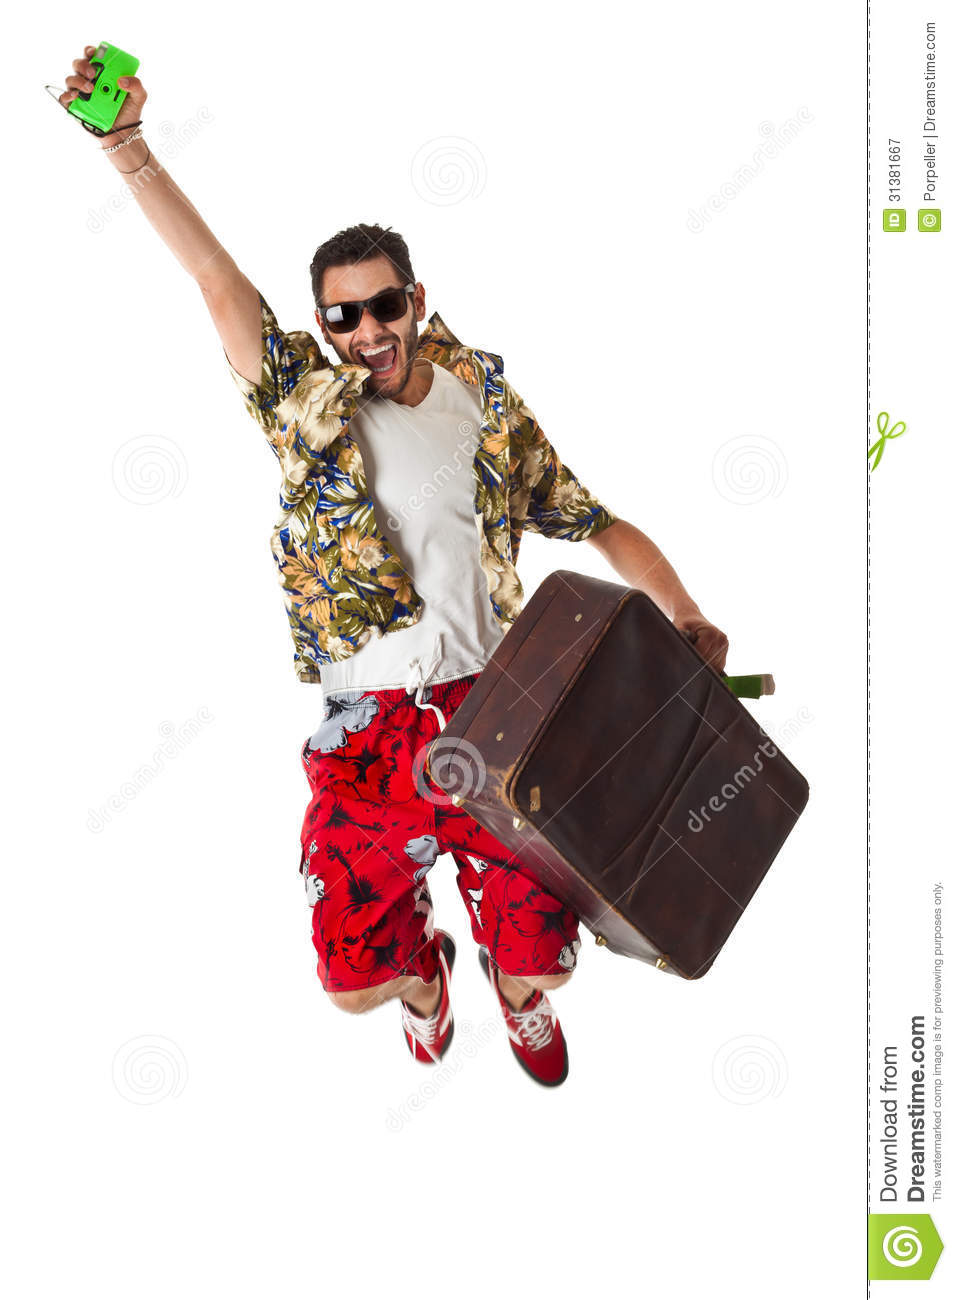 ... male in a colorful outfit ready to travel as a stereotype tourist